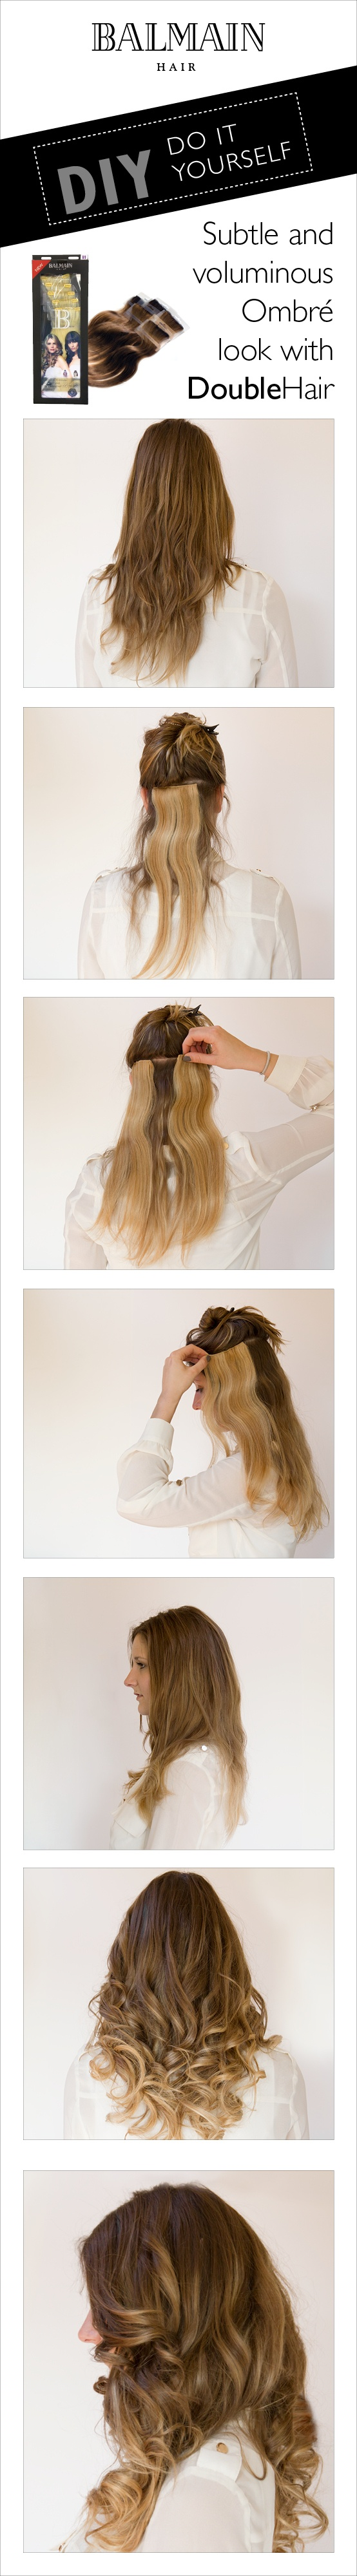 Create the ombre look without chemicals!